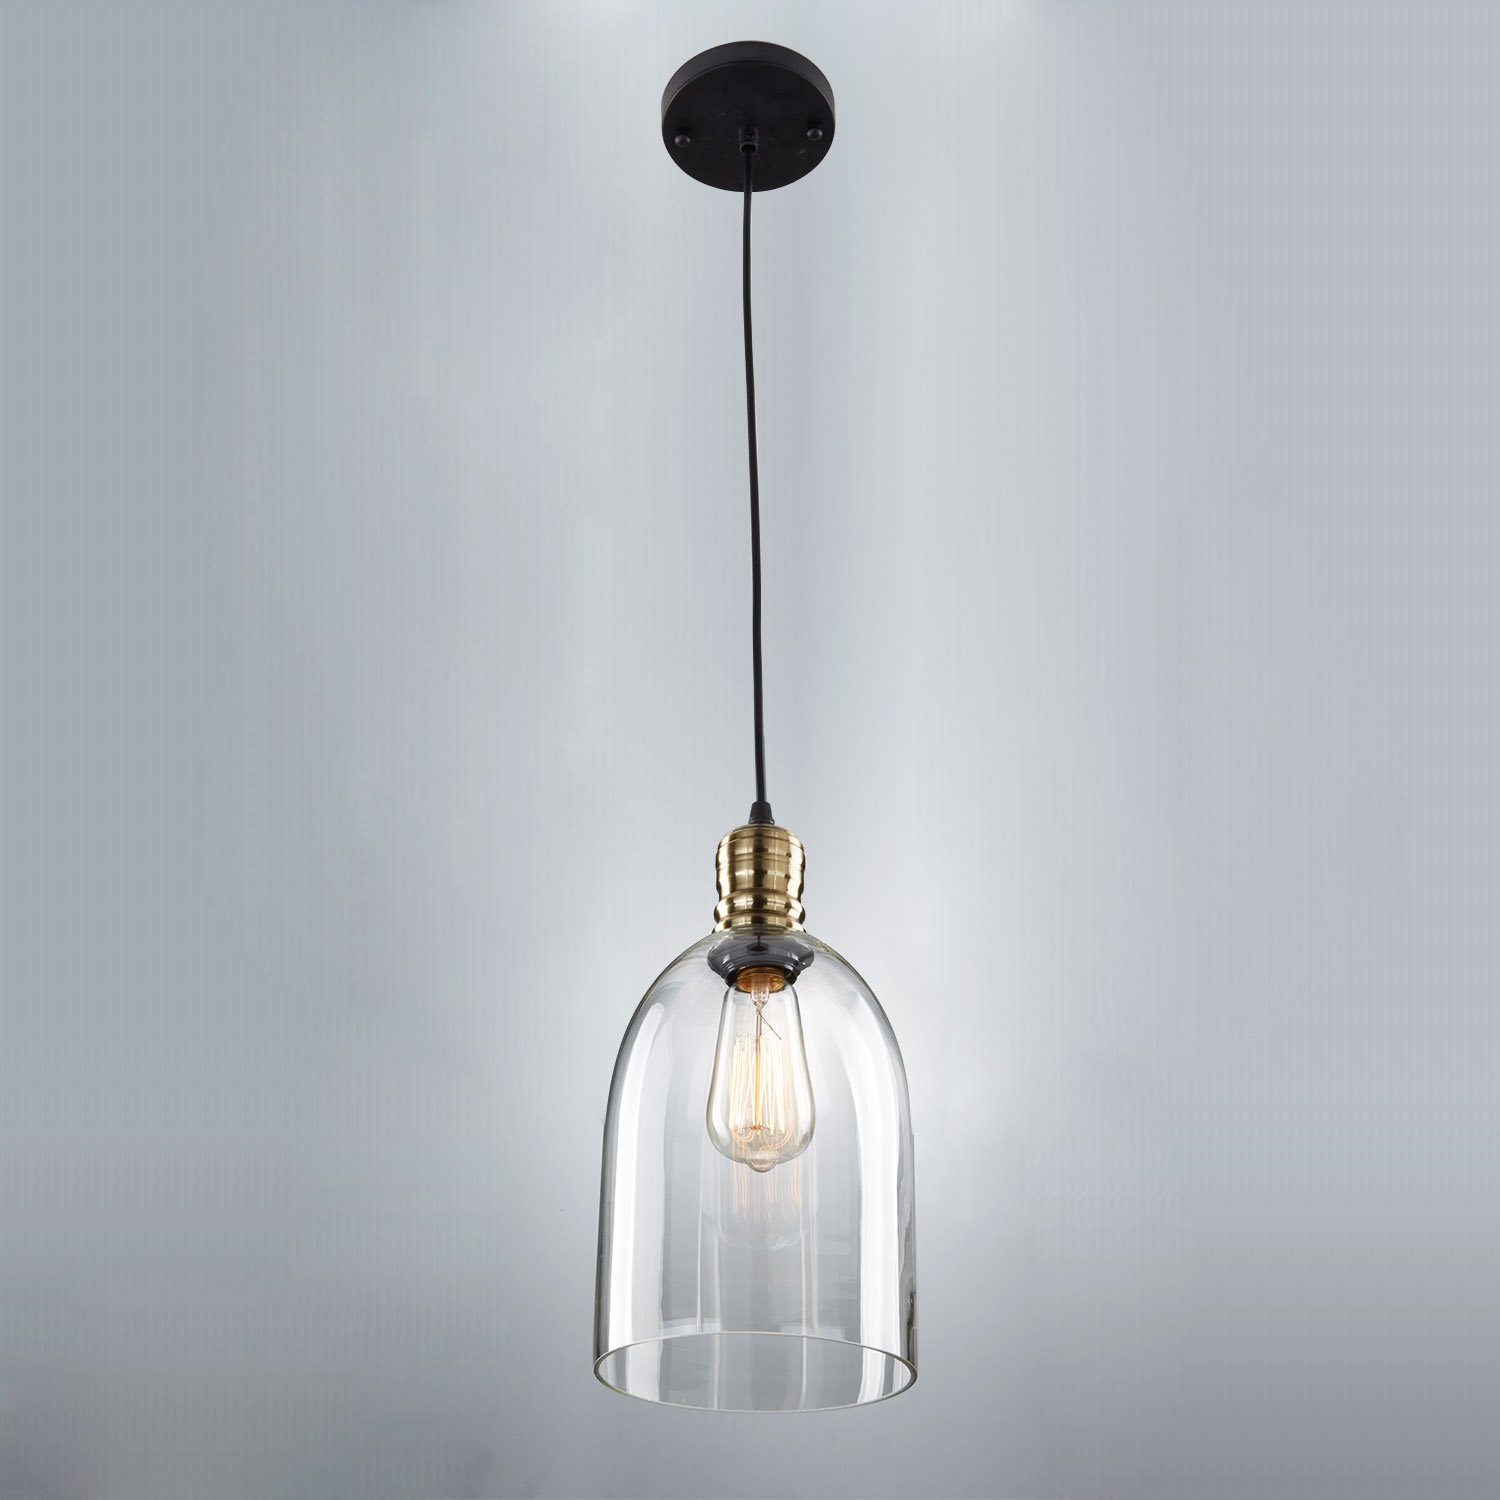 LESR YOBO Lighting Industrial Edison Hanging Vintage Mini Glass Shade Pendant Light Amazoncouk